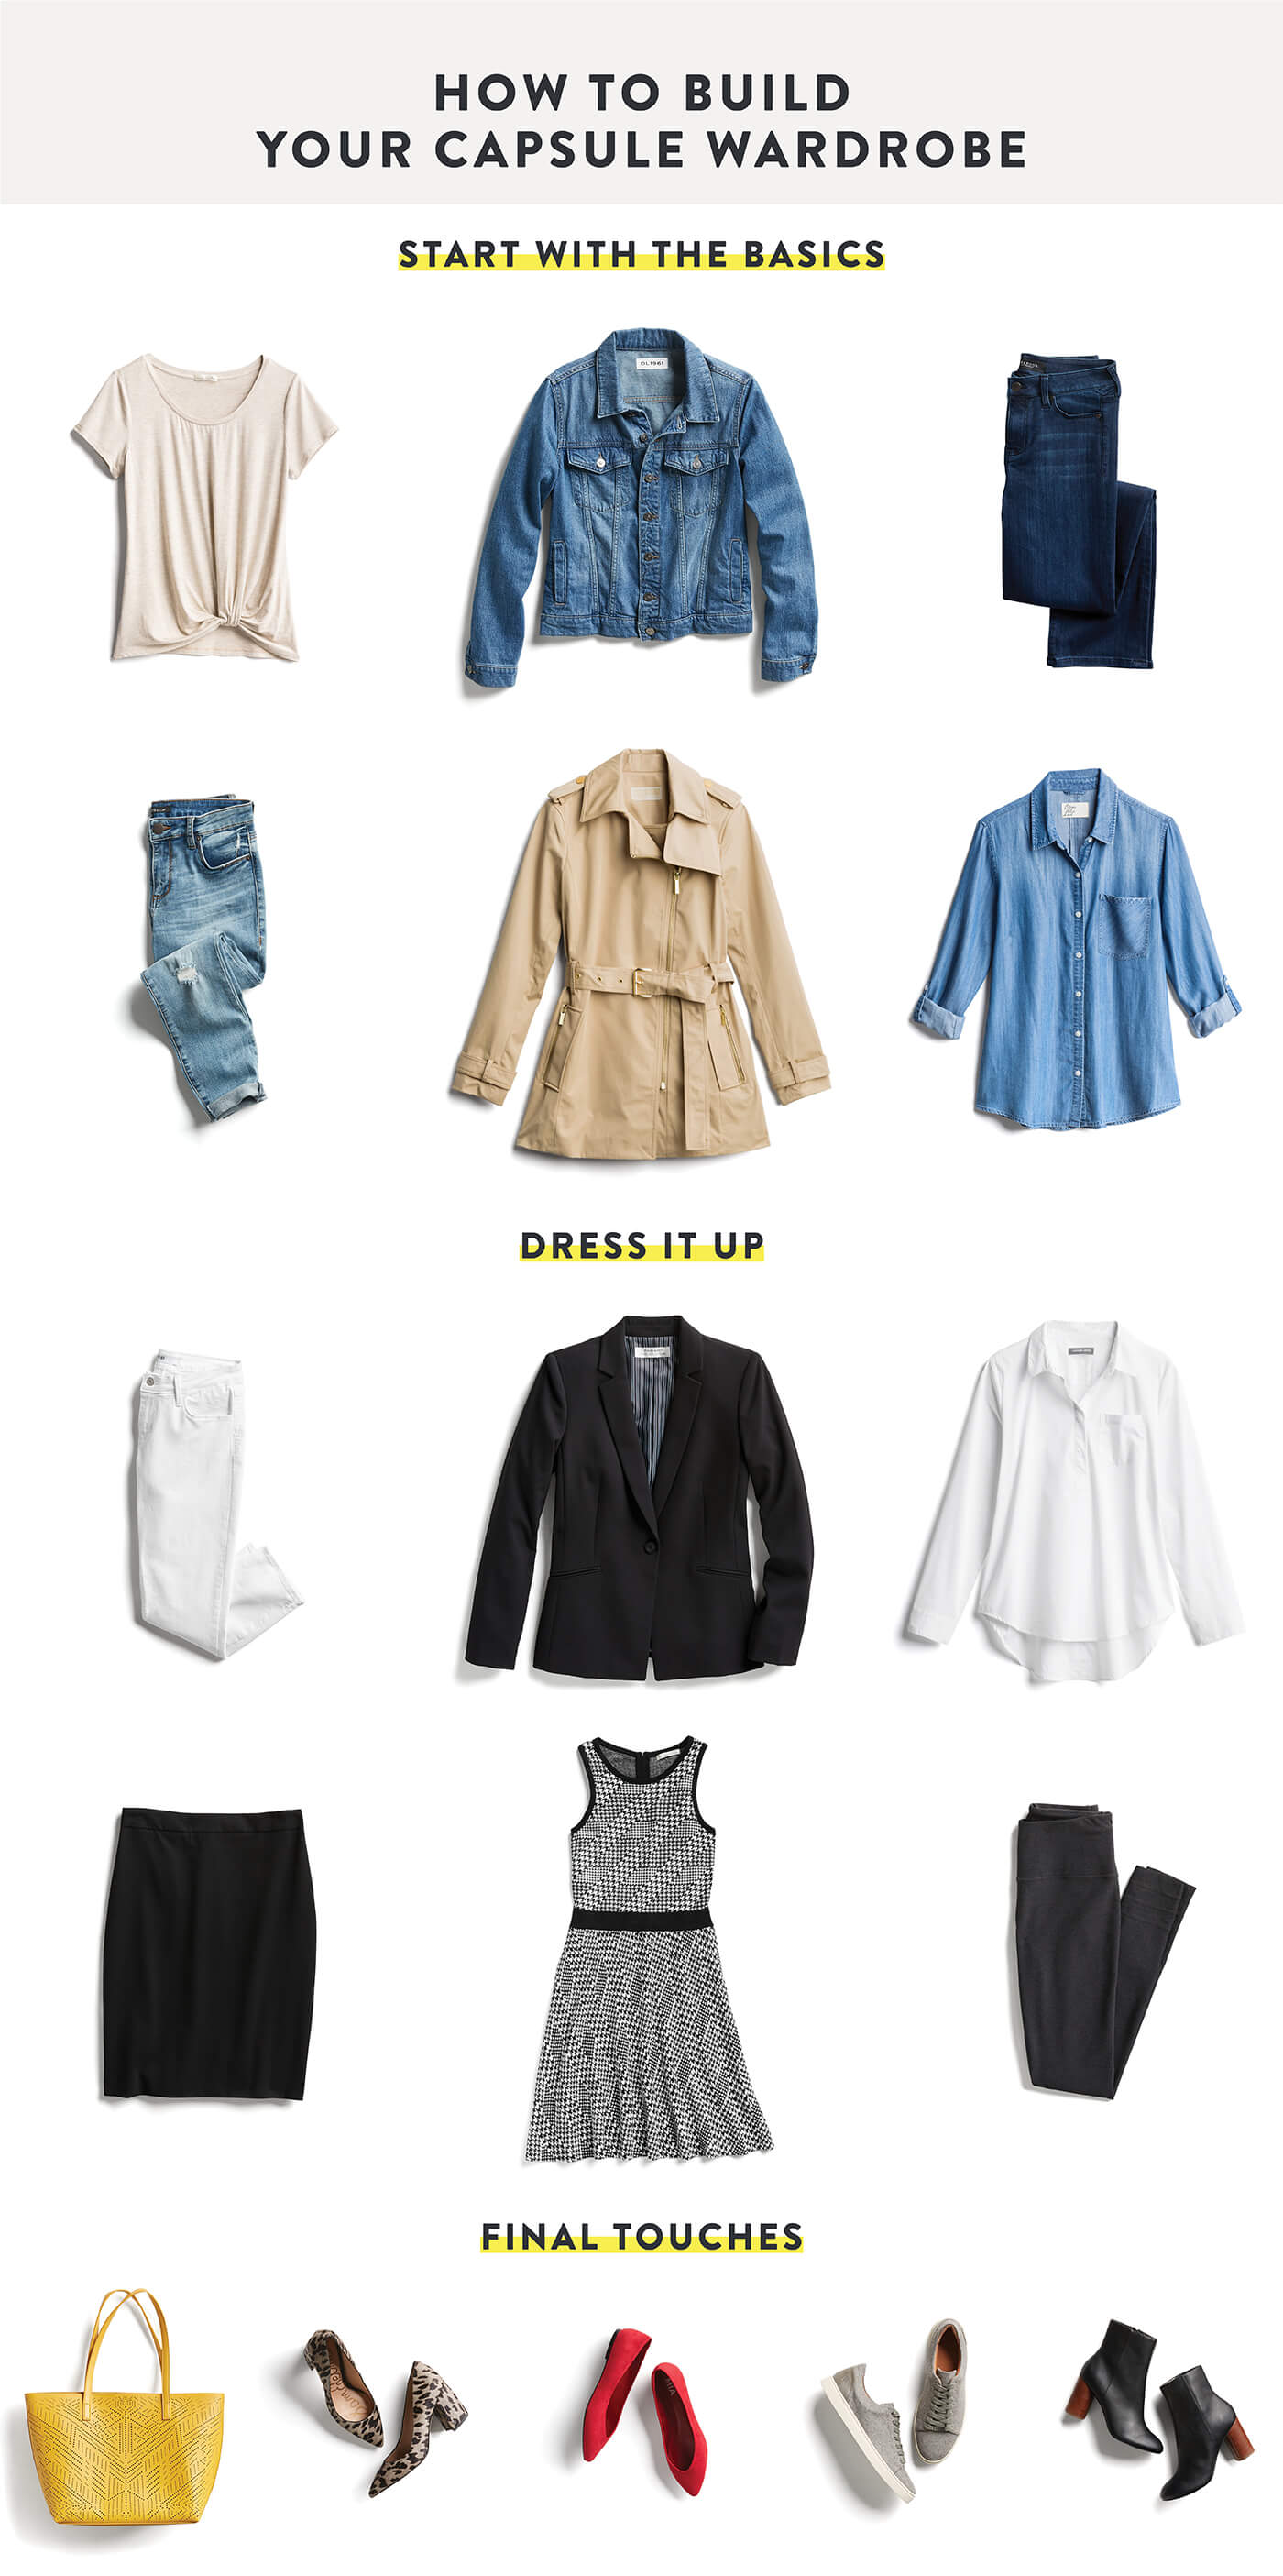 7a843315ae3a WATCH: What's a Capsule Wardrobe? And, How Do You Build One ...